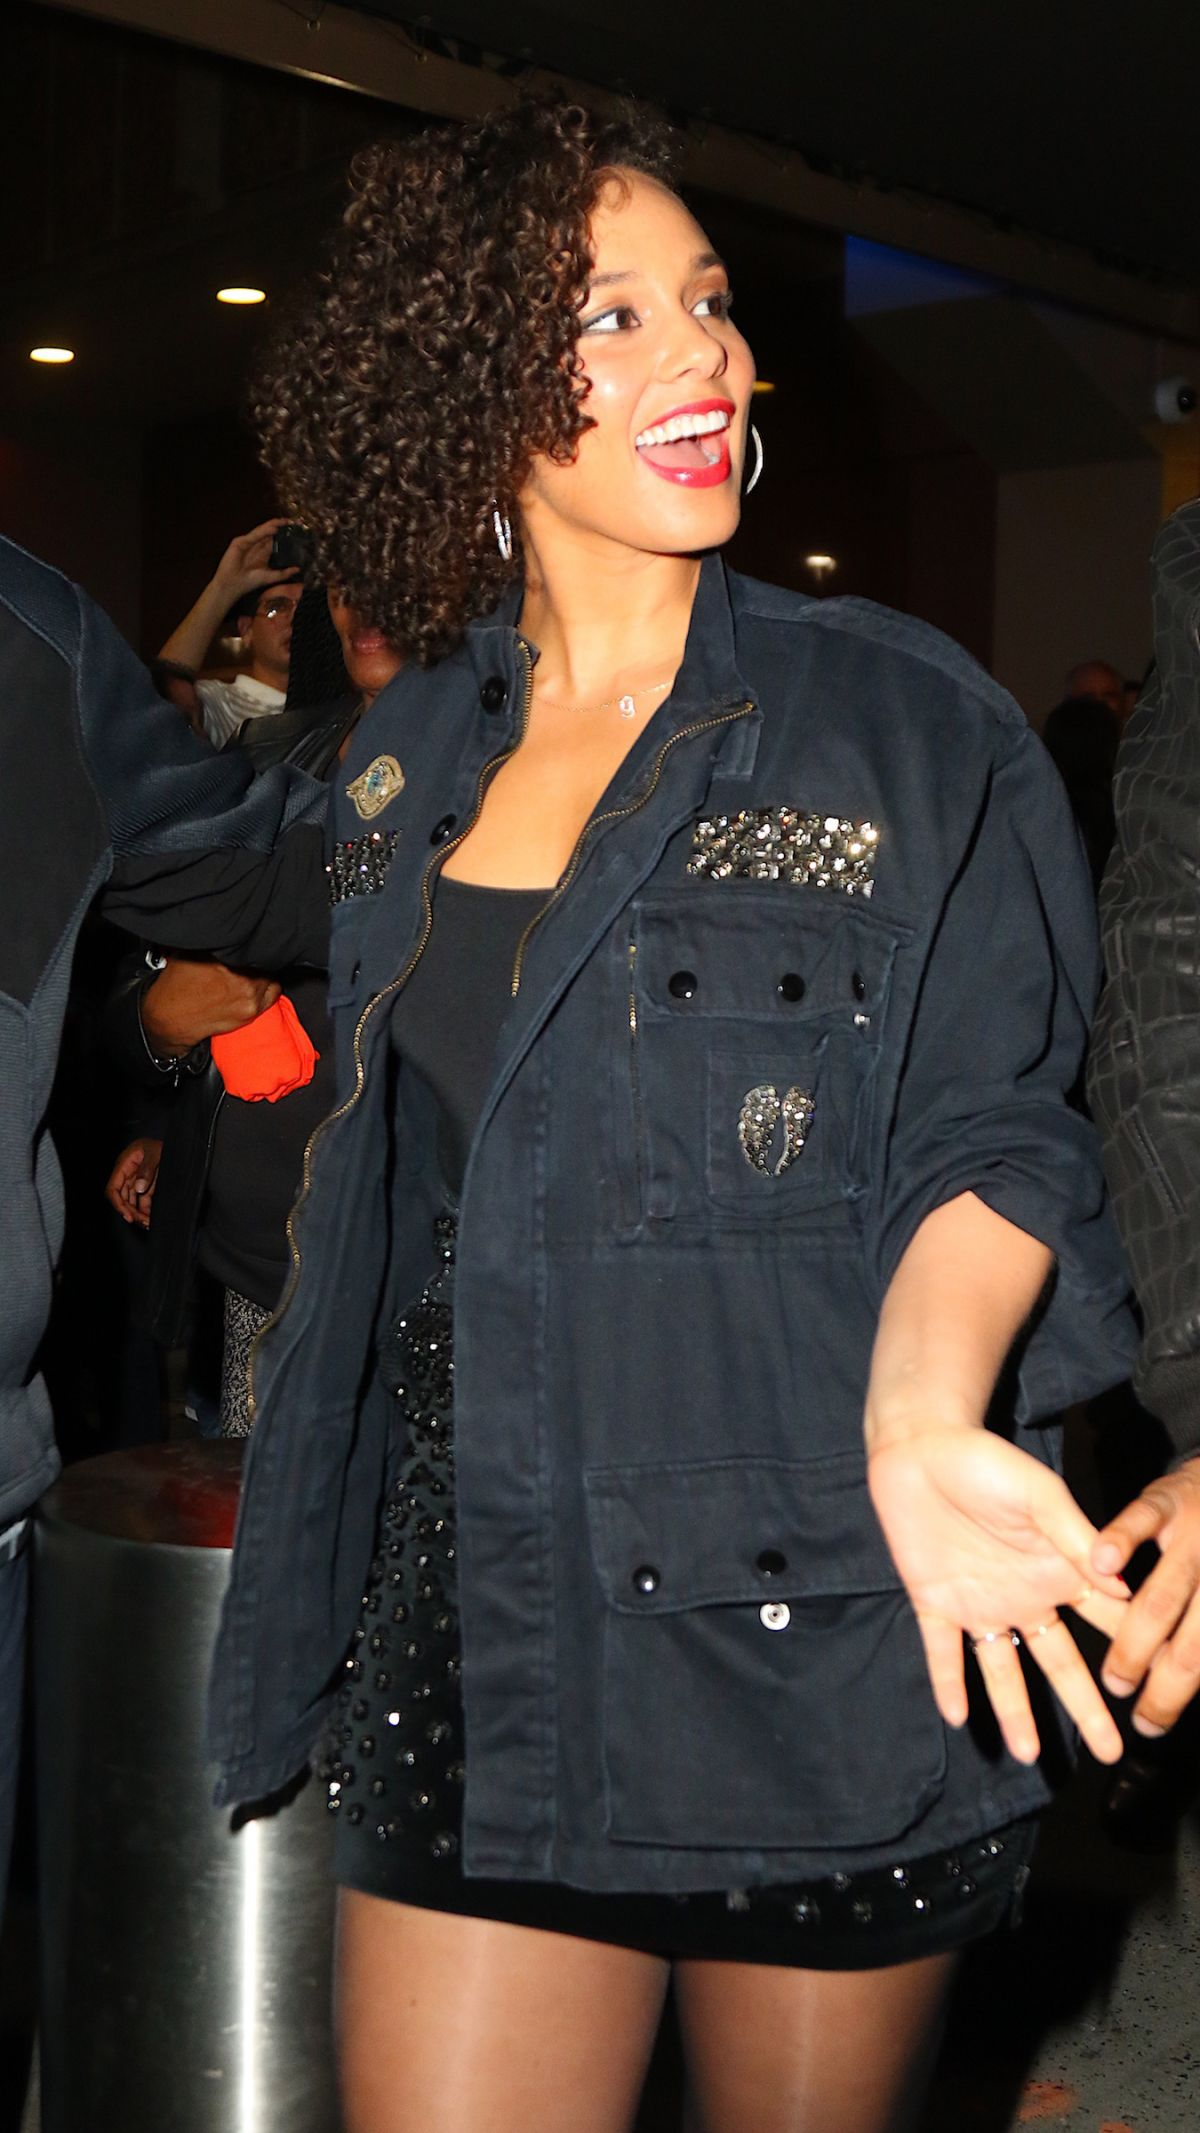 ALICIA KEYS Arrives to The Musket Room for Dinner in Soho 11/27/2015